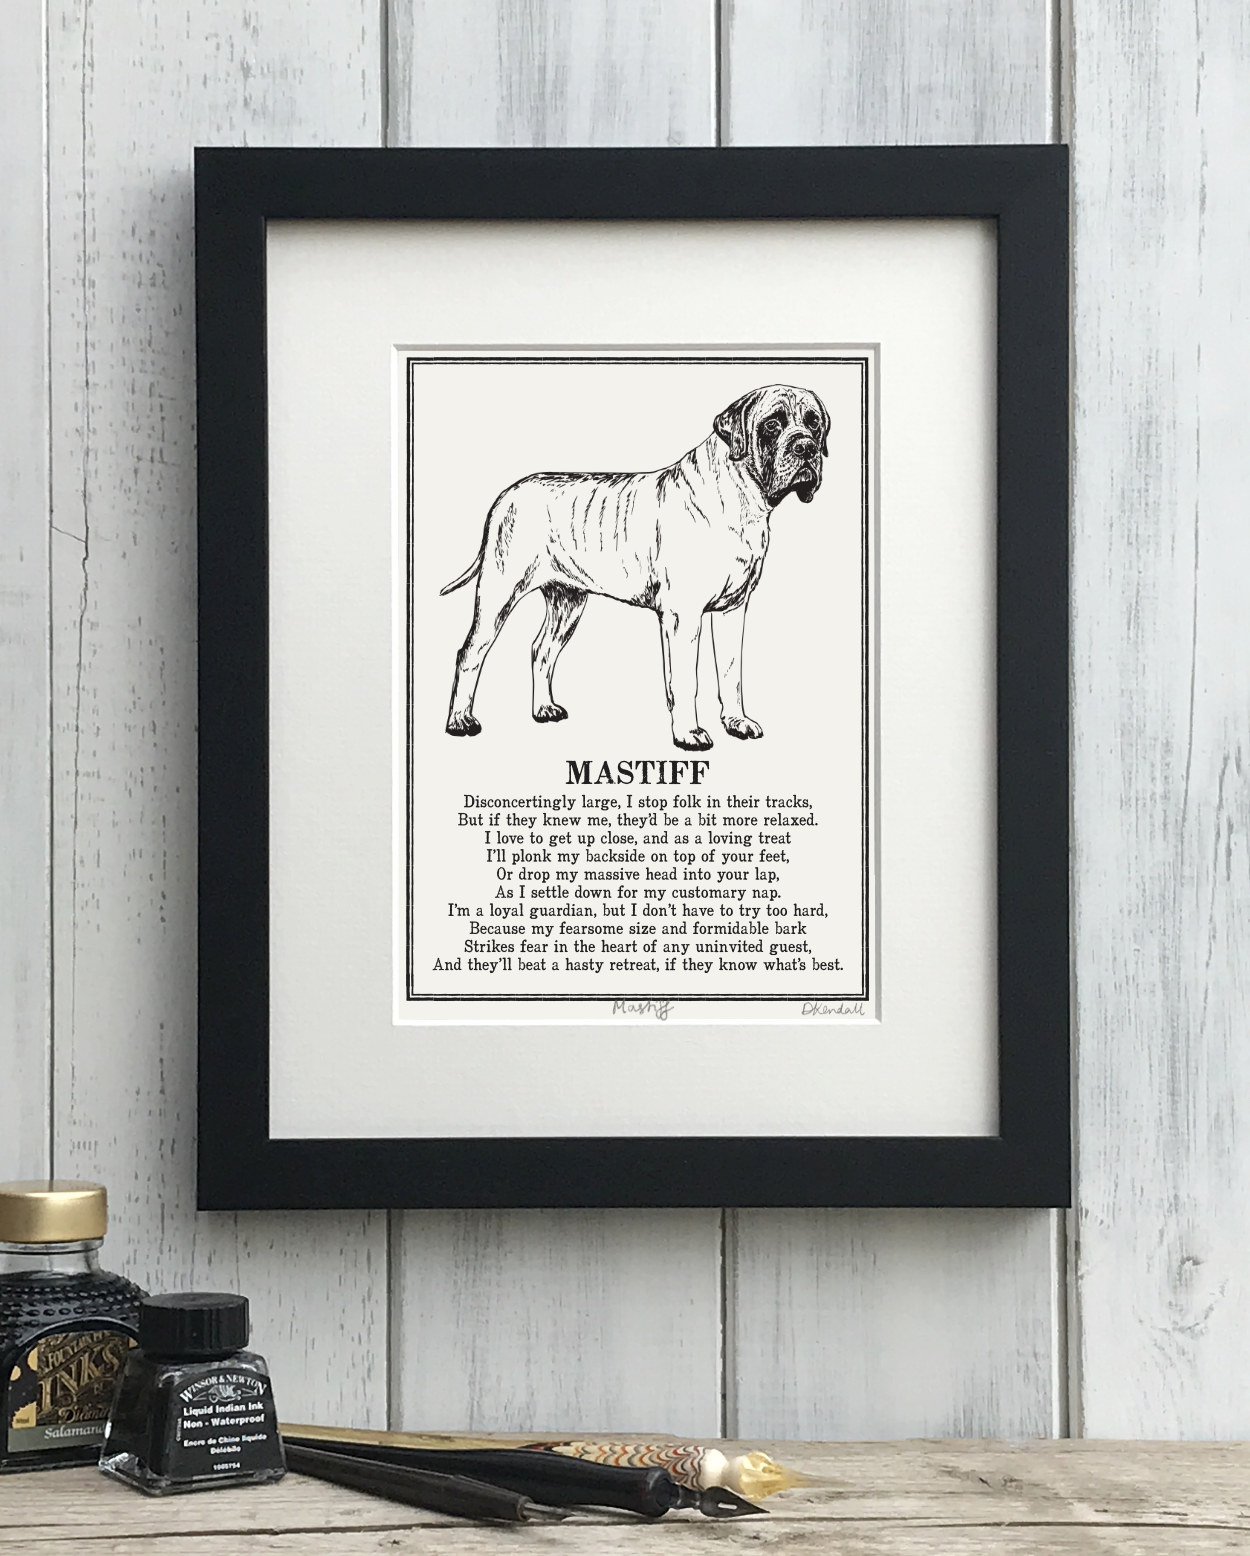 English Mastiff Doggerel Illustrated Poem Art Print | The Enlightened Hound